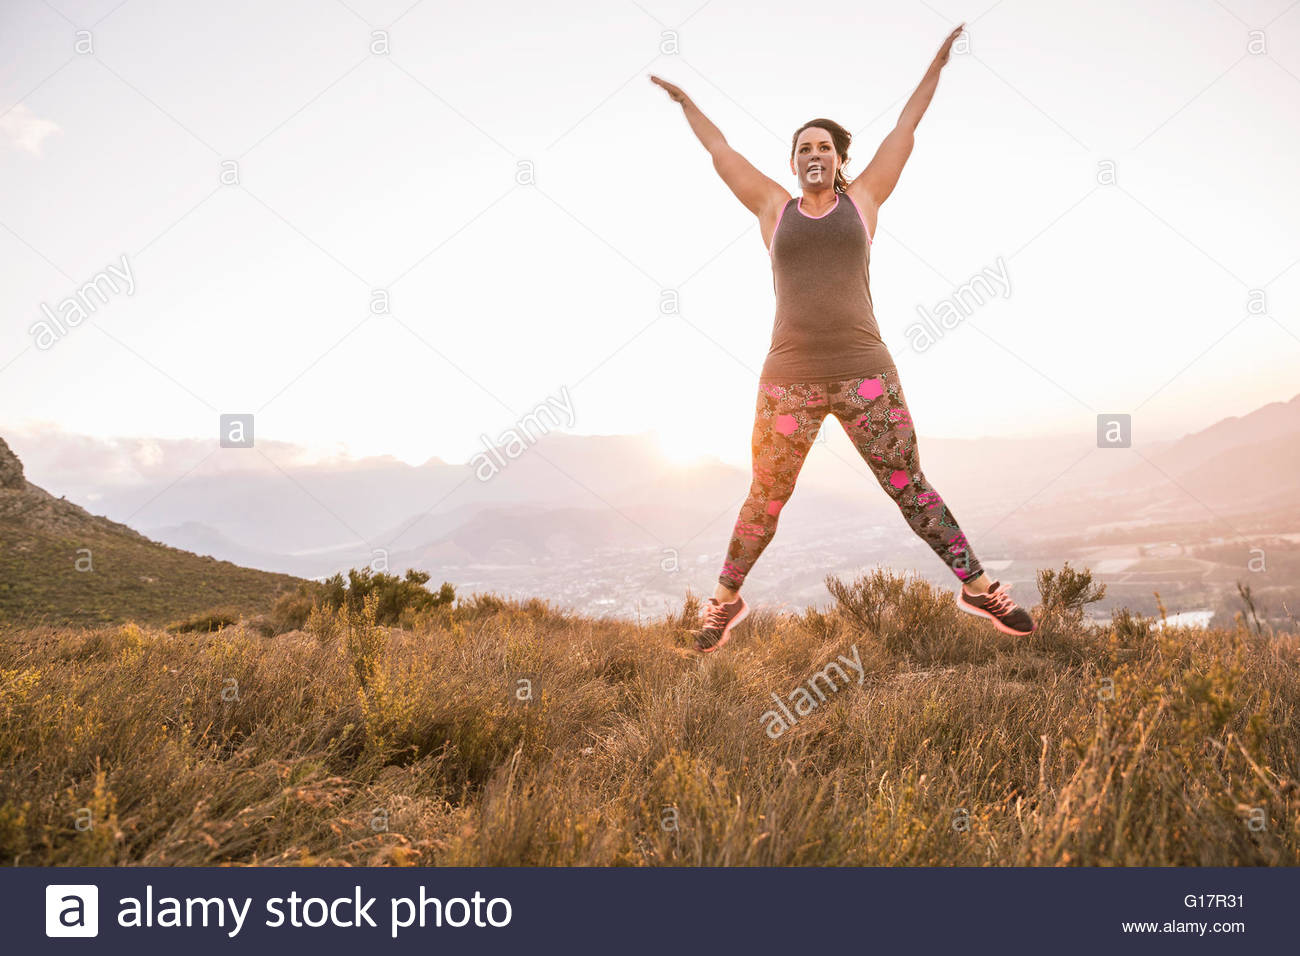 Plus size woman on mountain wearing sports clothing doing star jump in mid air - Stock Image